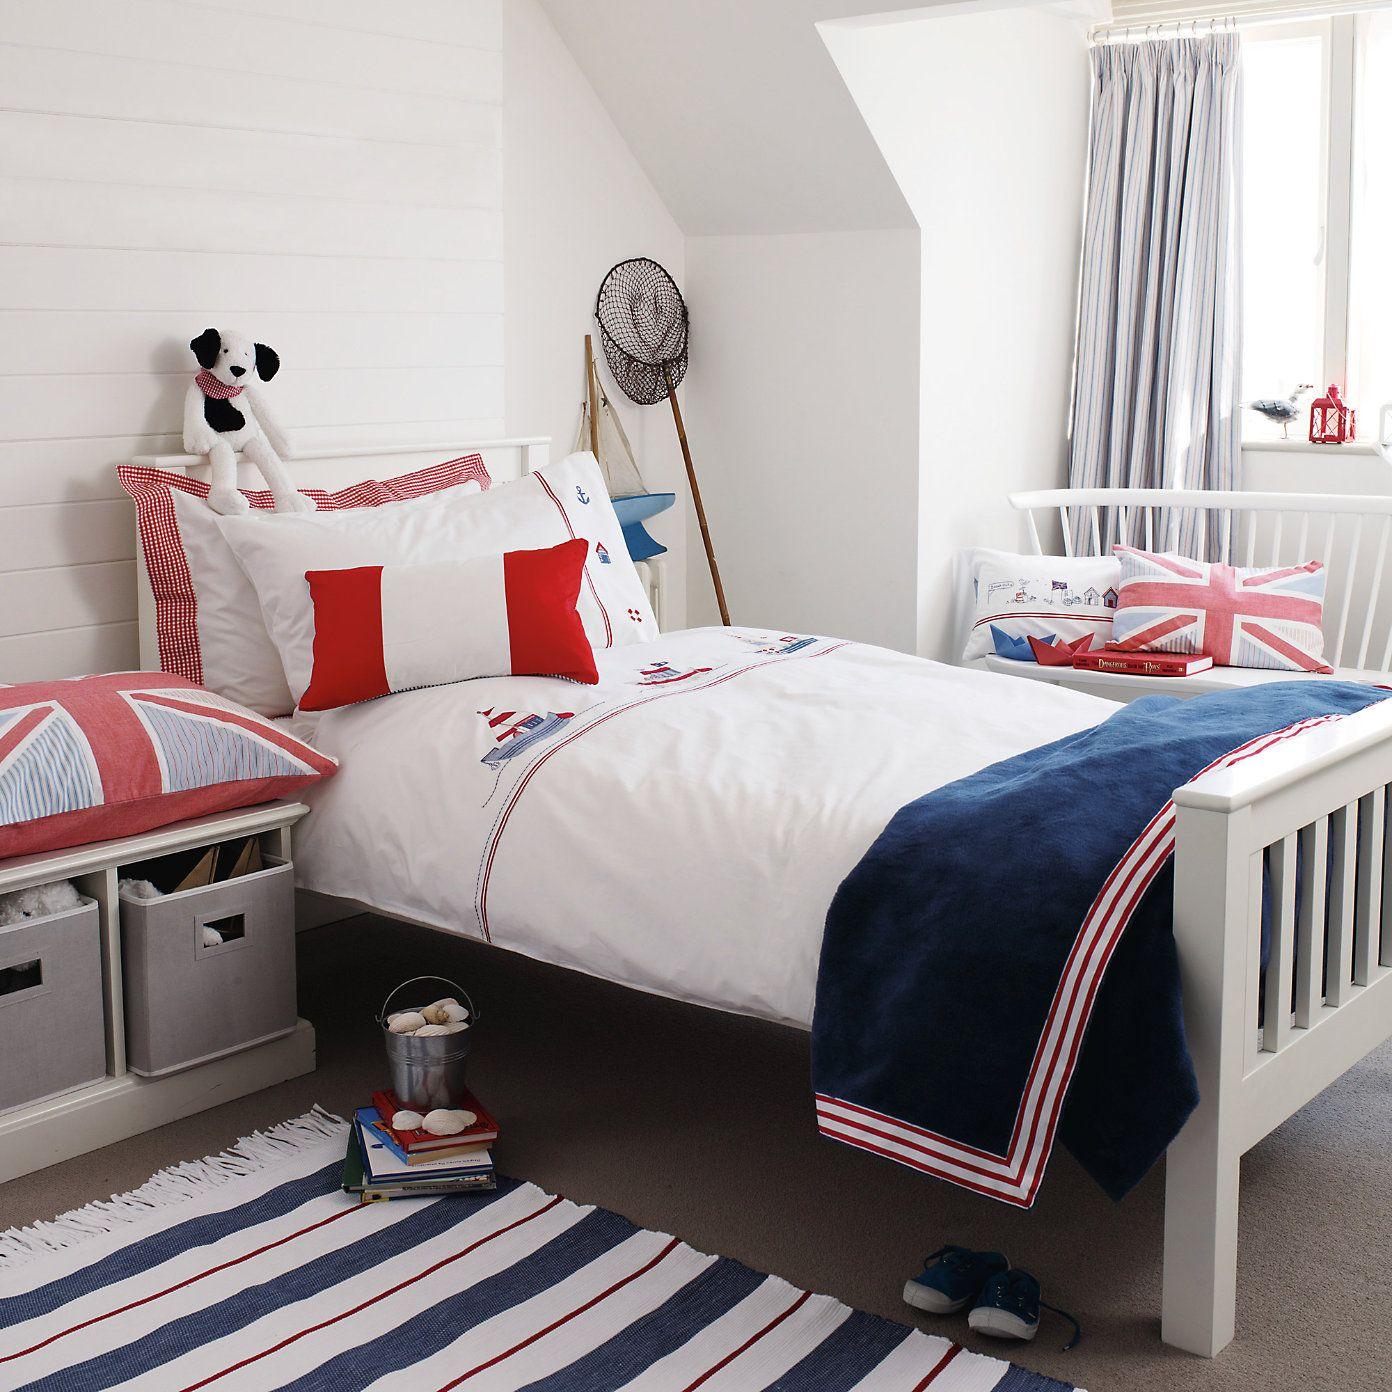 Buy Childrens Bedroom U003e Childrens Bedroom Accessories U003e Red White U0026 Blue  Fringed Rug From The White Company